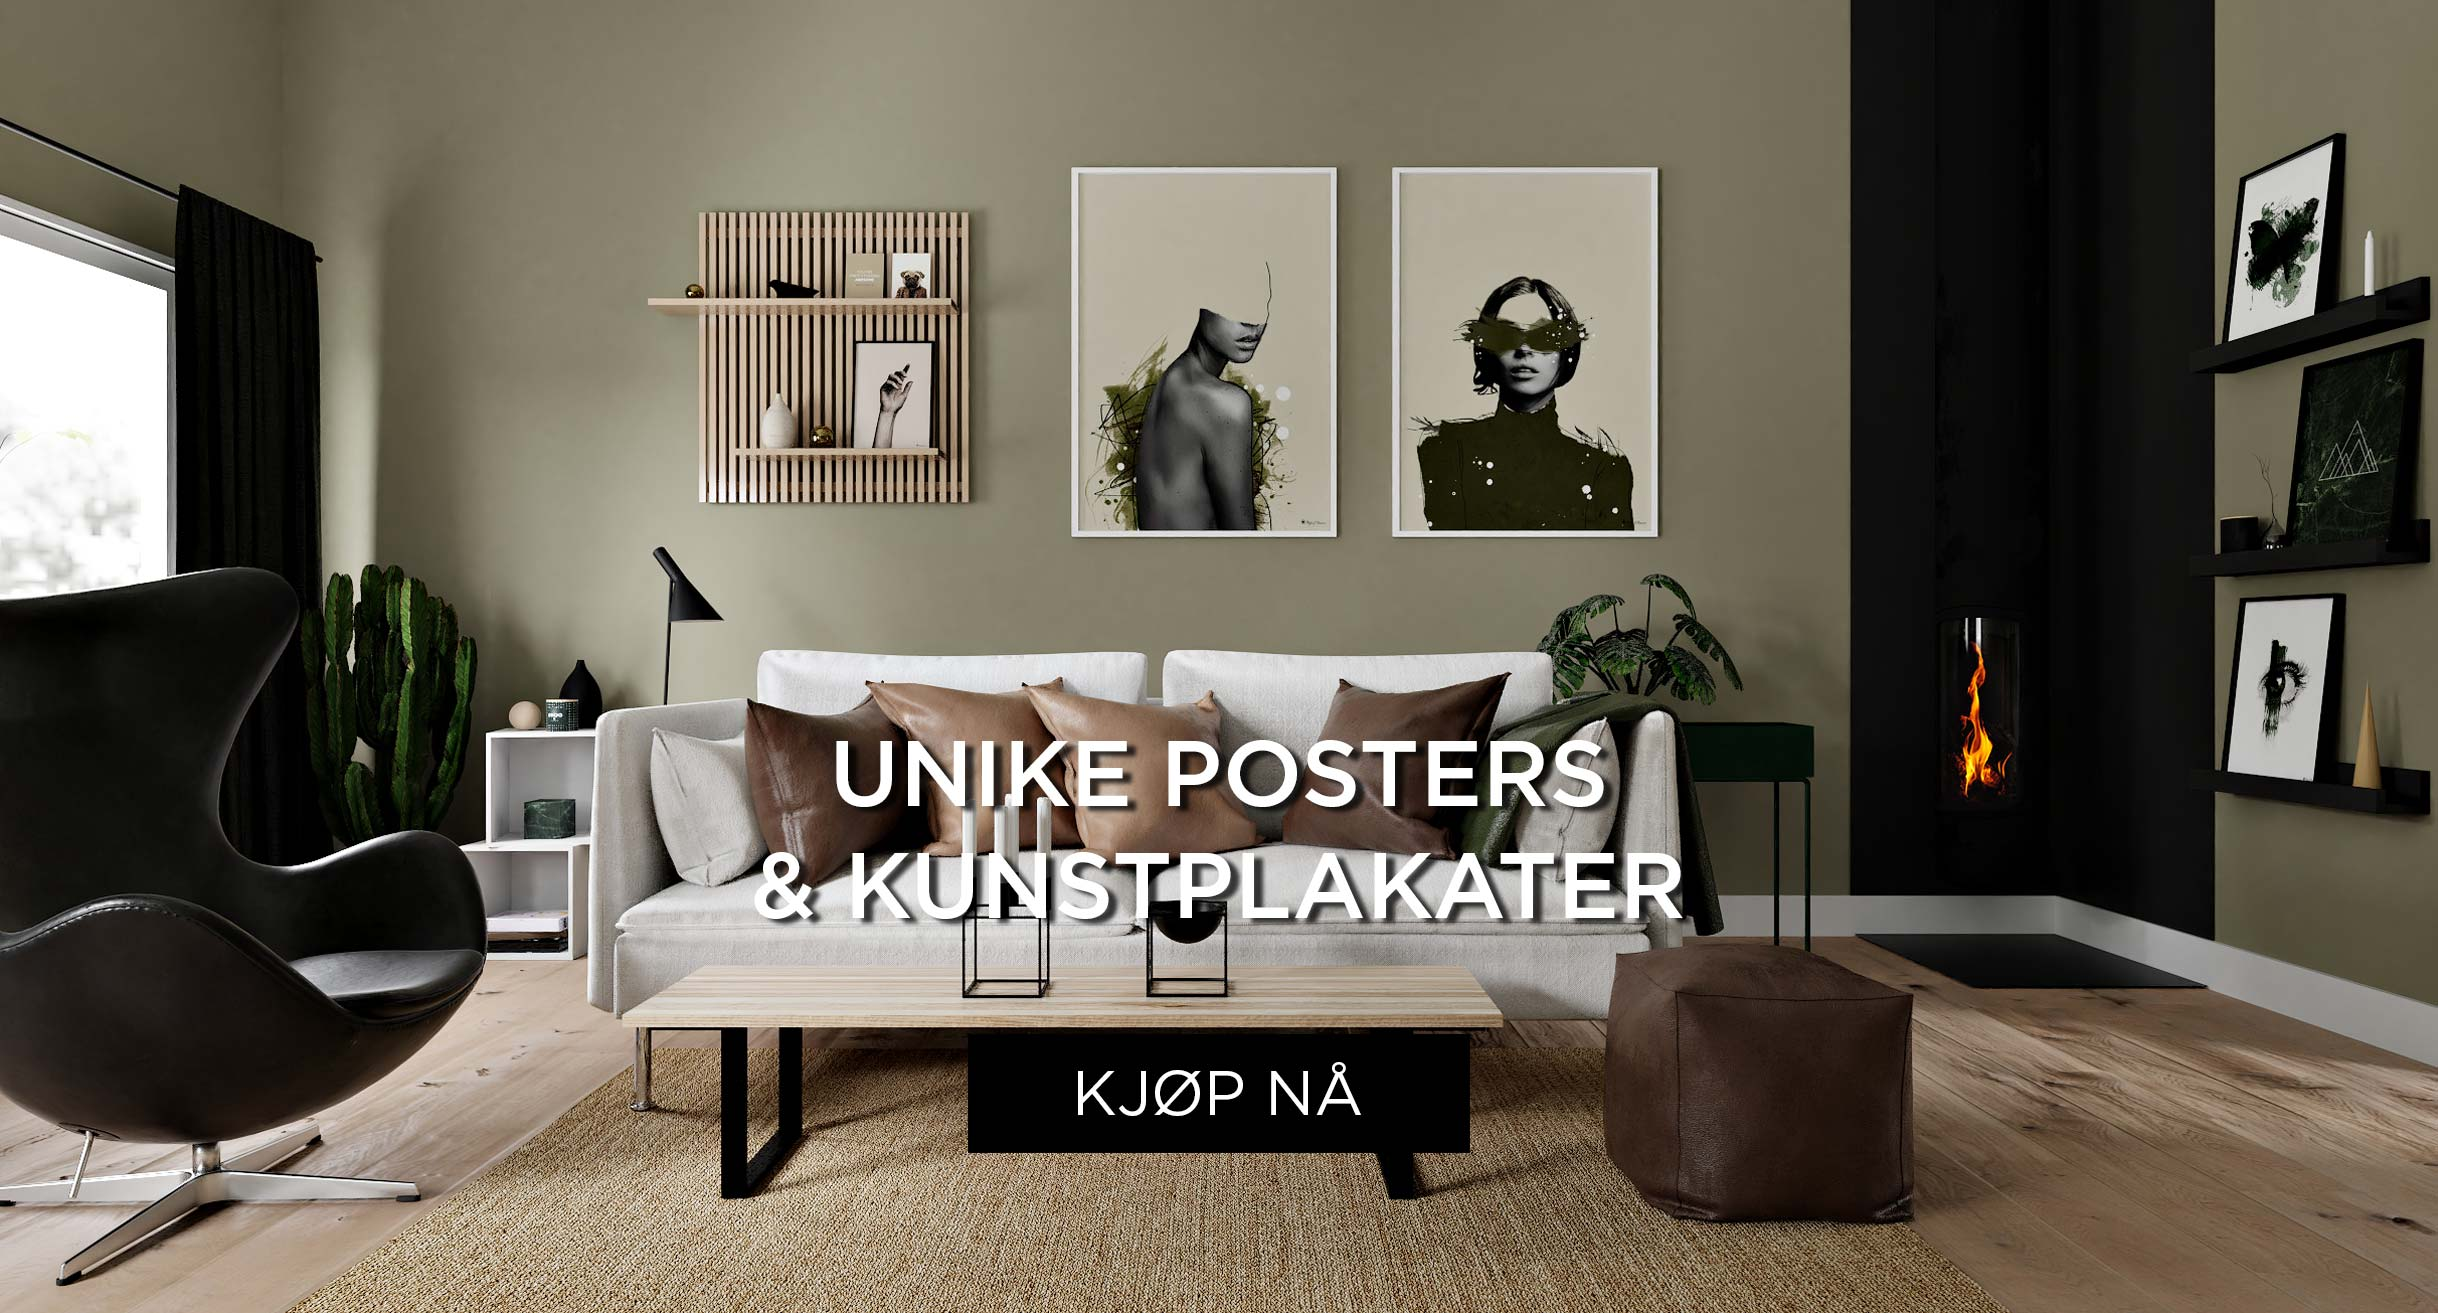 Unike posters & plakater |People of Tomorrow